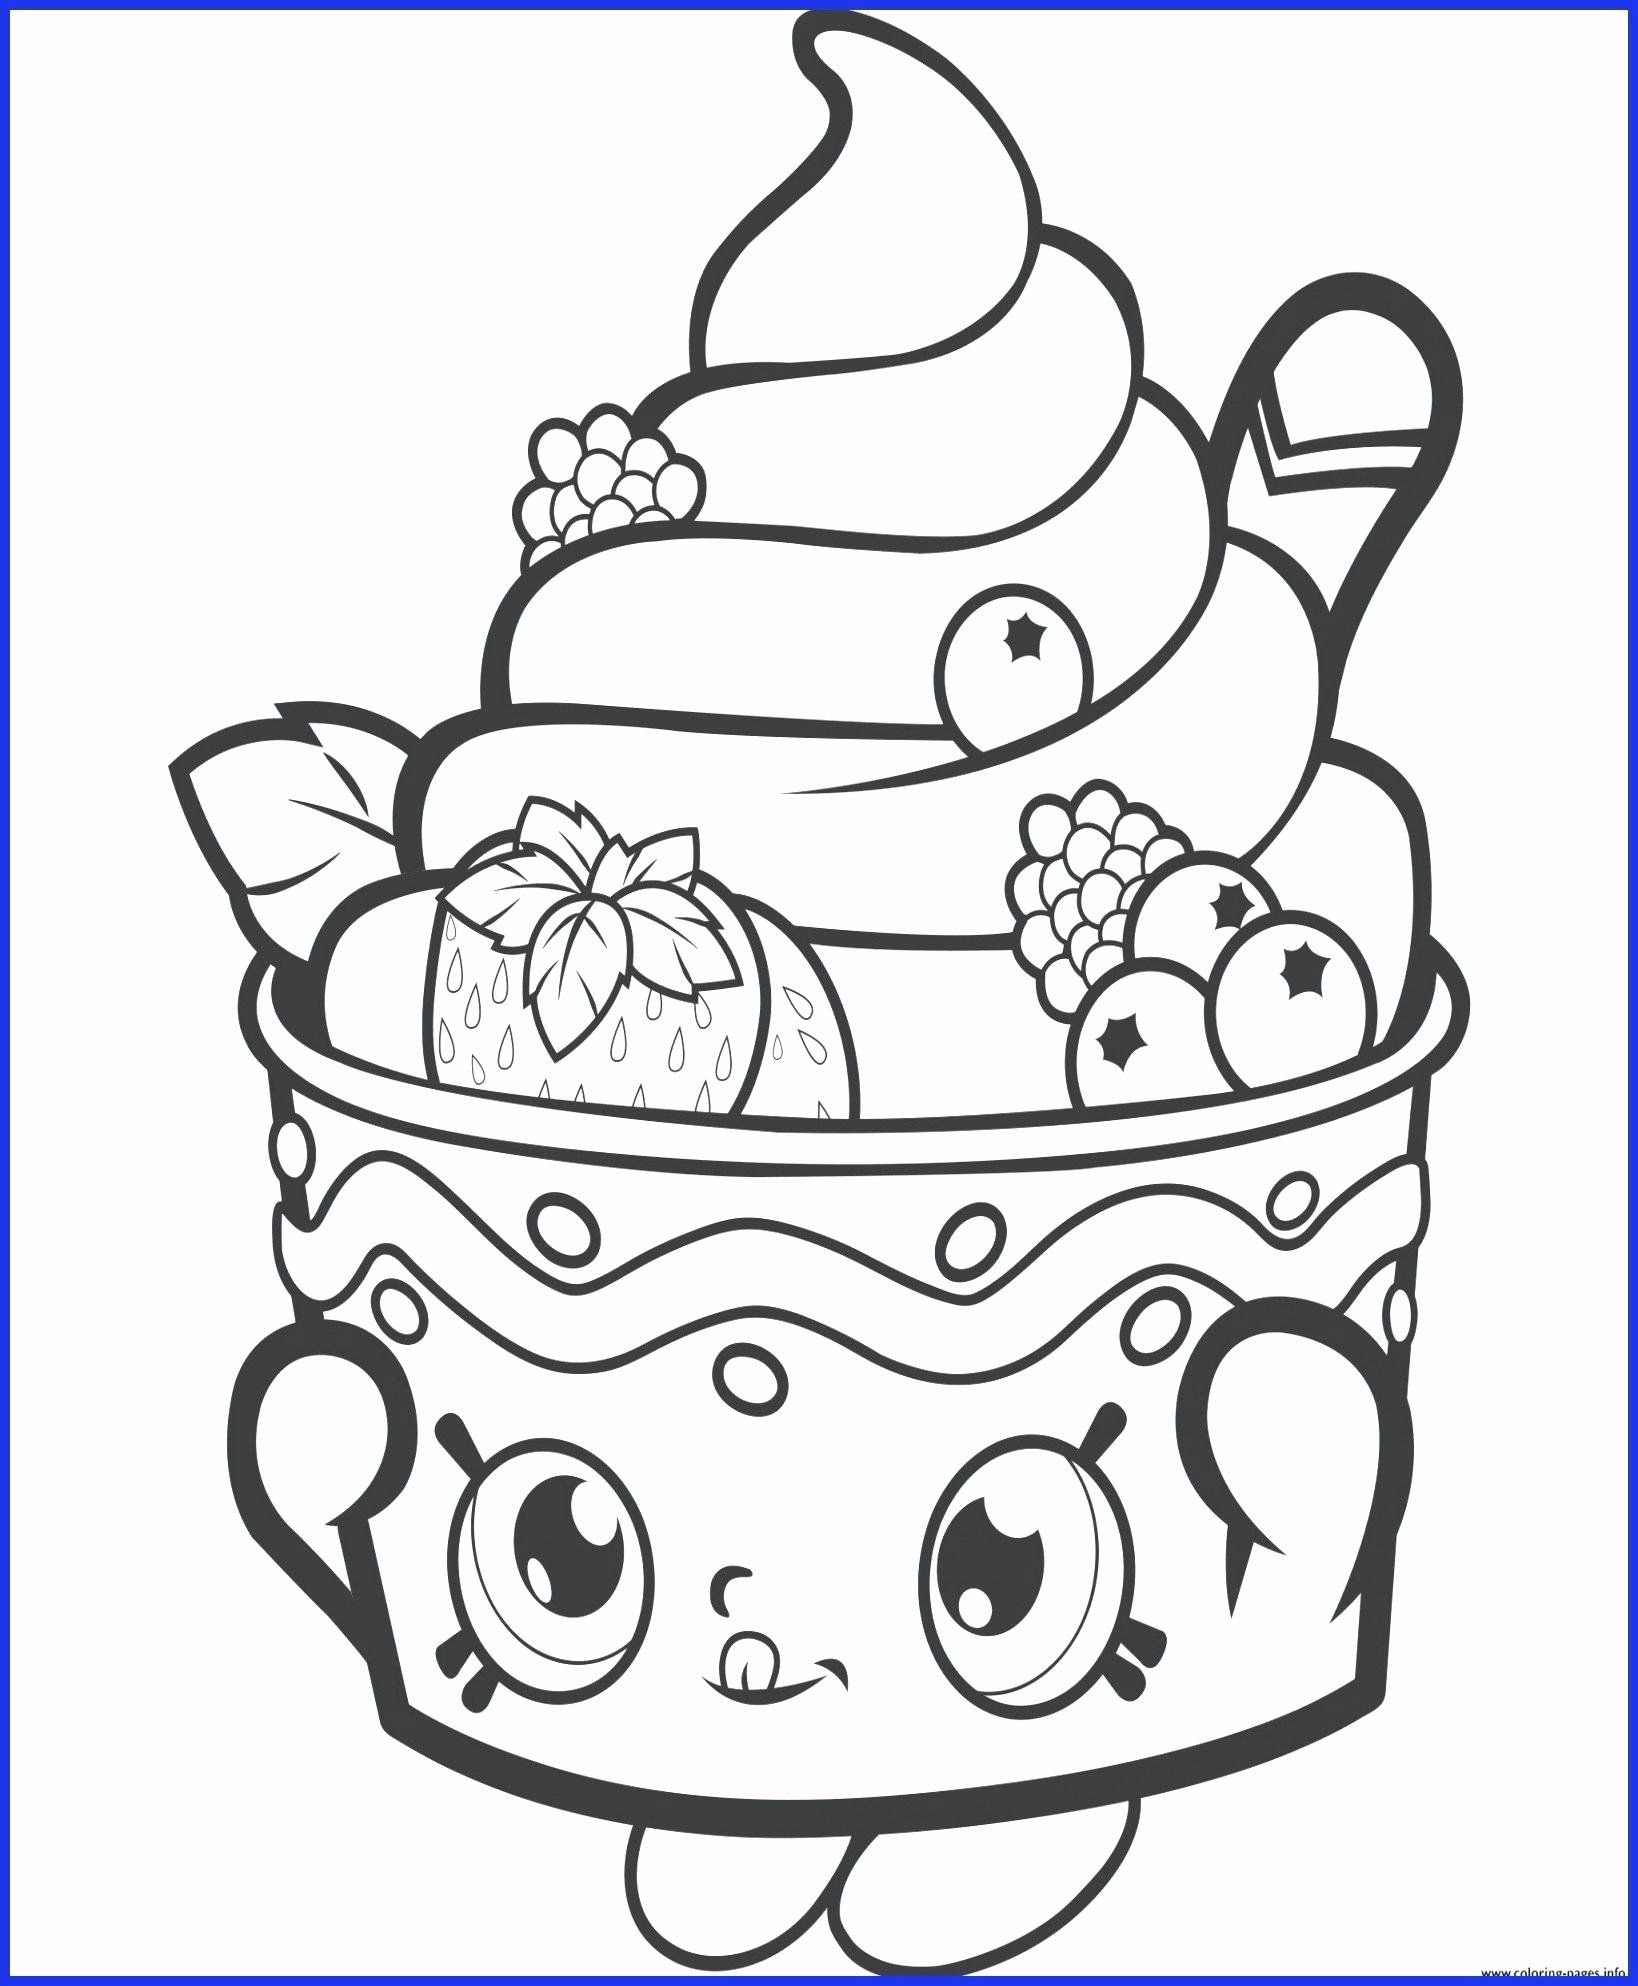 Milky Way Coloring Page Fresh Coloring Pages Candy Bar Superpage Shopkins Coloring Pages Free Printable Turtle Coloring Pages Shopkin Coloring Pages